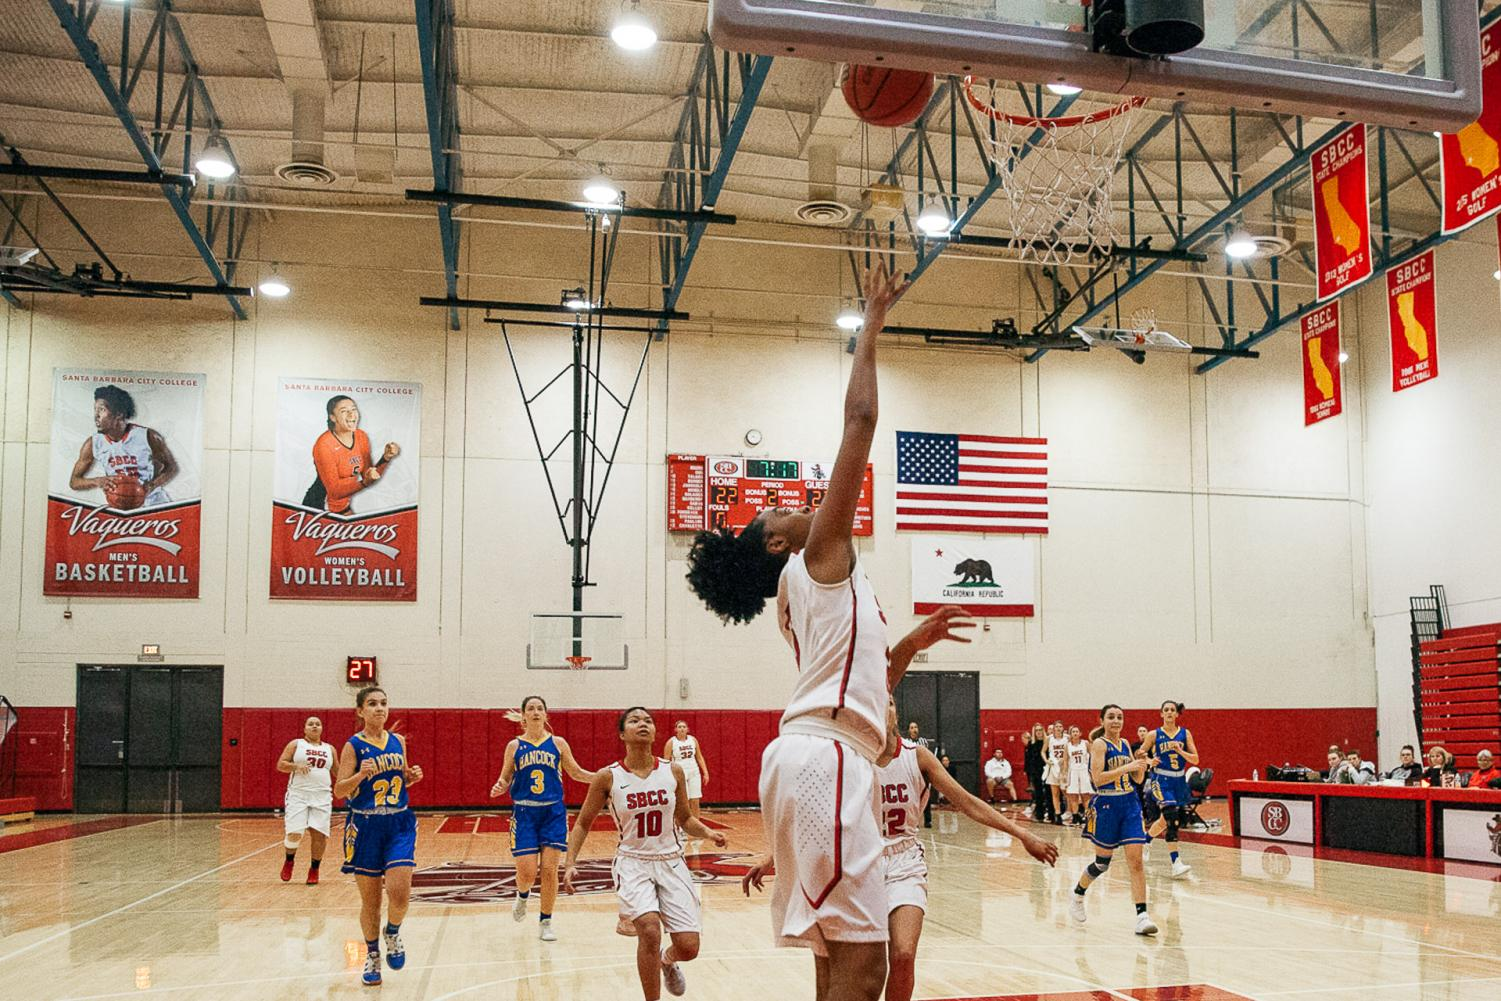 Meagan Moore leaps for two points during a game against Allan Hancock on Thursday, Feb. 19, 2019, at La Playa Stadium at City College in Santa Barbara, Calif.